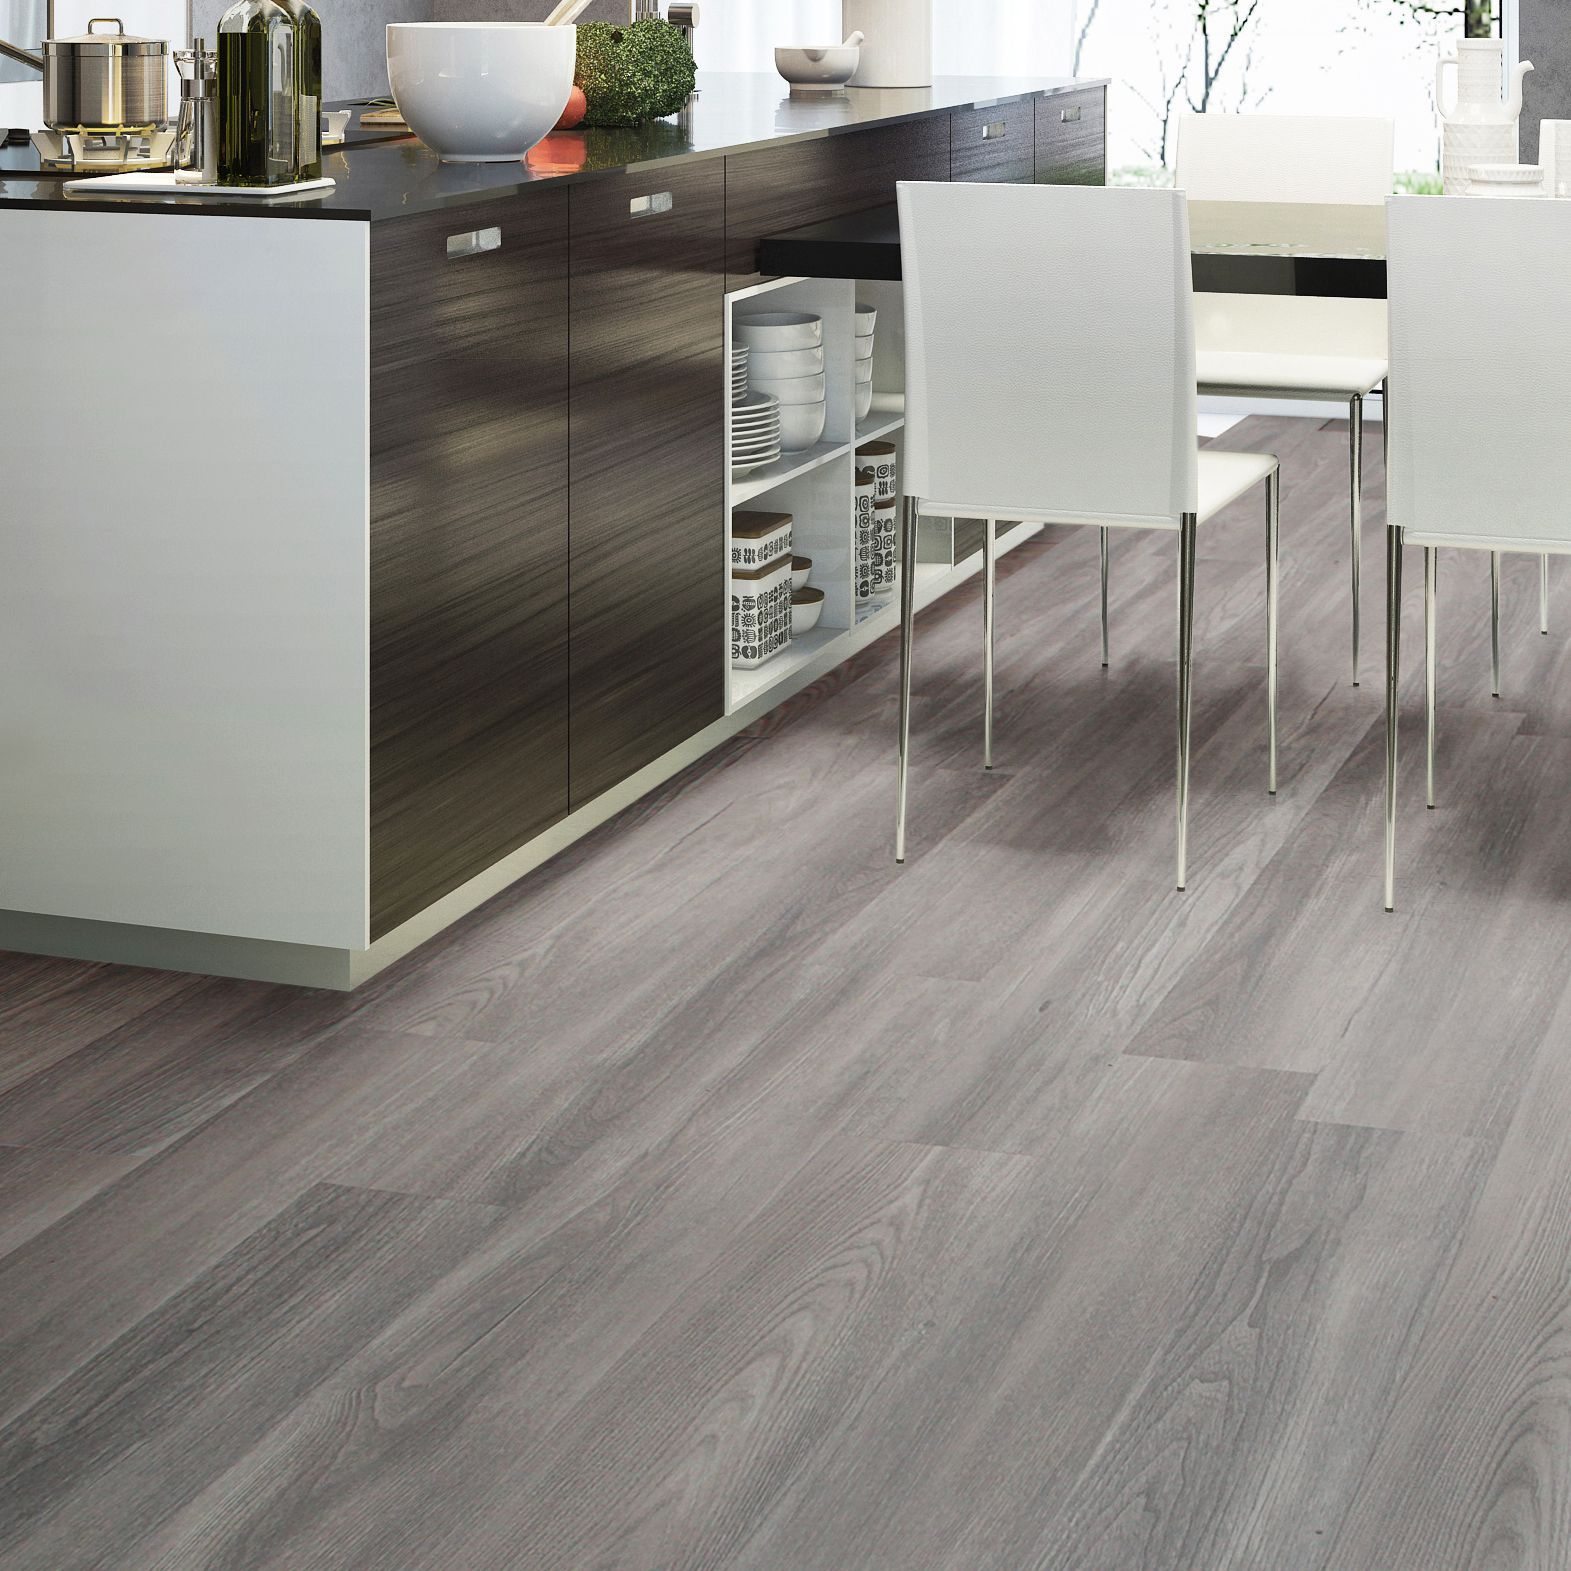 Colours grey natural oak effect waterproof luxury vinyl click colours grey natural oak effect waterproof luxury vinyl click flooring 220m pack doublecrazyfo Gallery